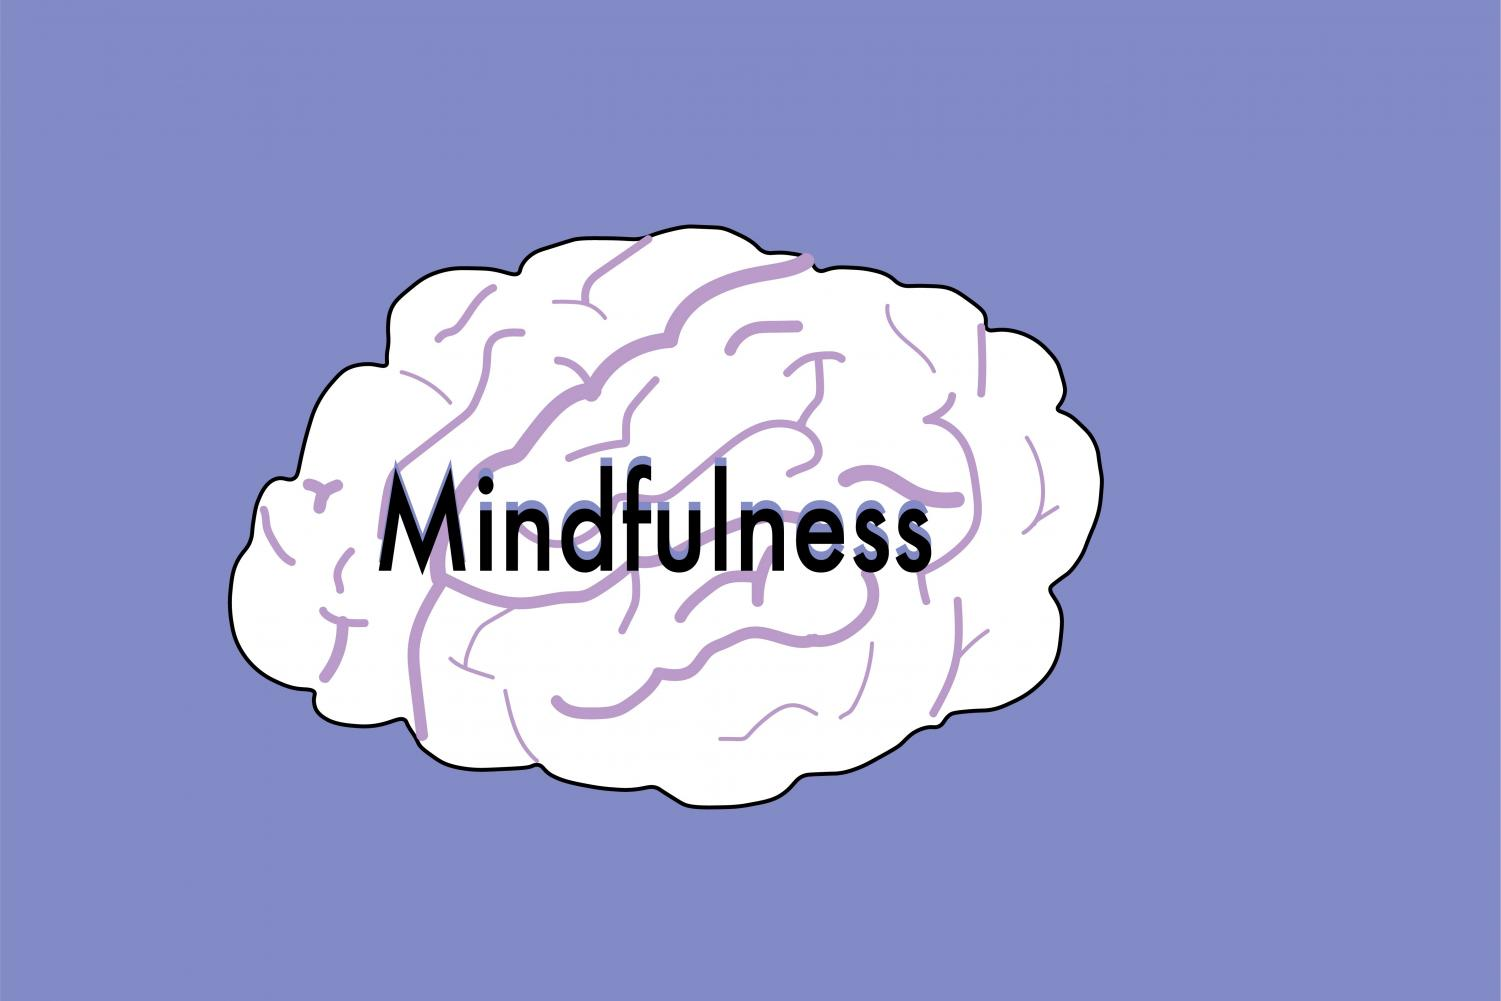 Mindfulness is a program that helps relax the brain.